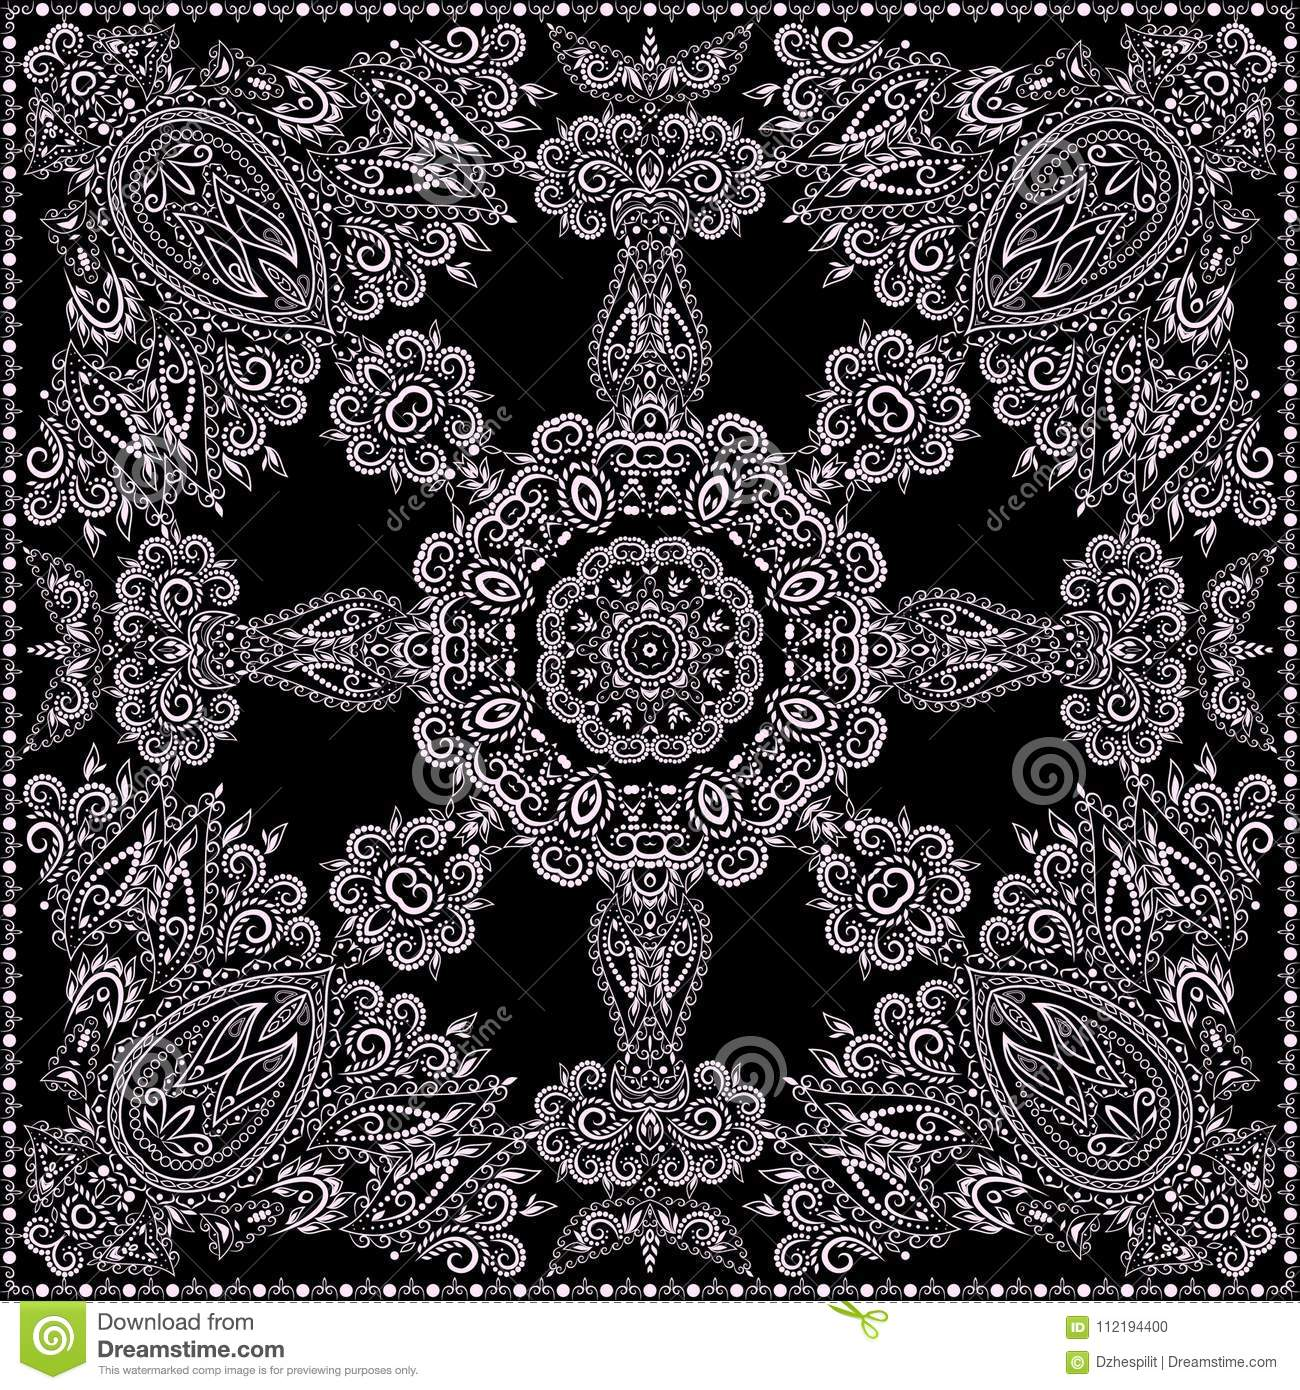 Bandana classy black and white vector print square